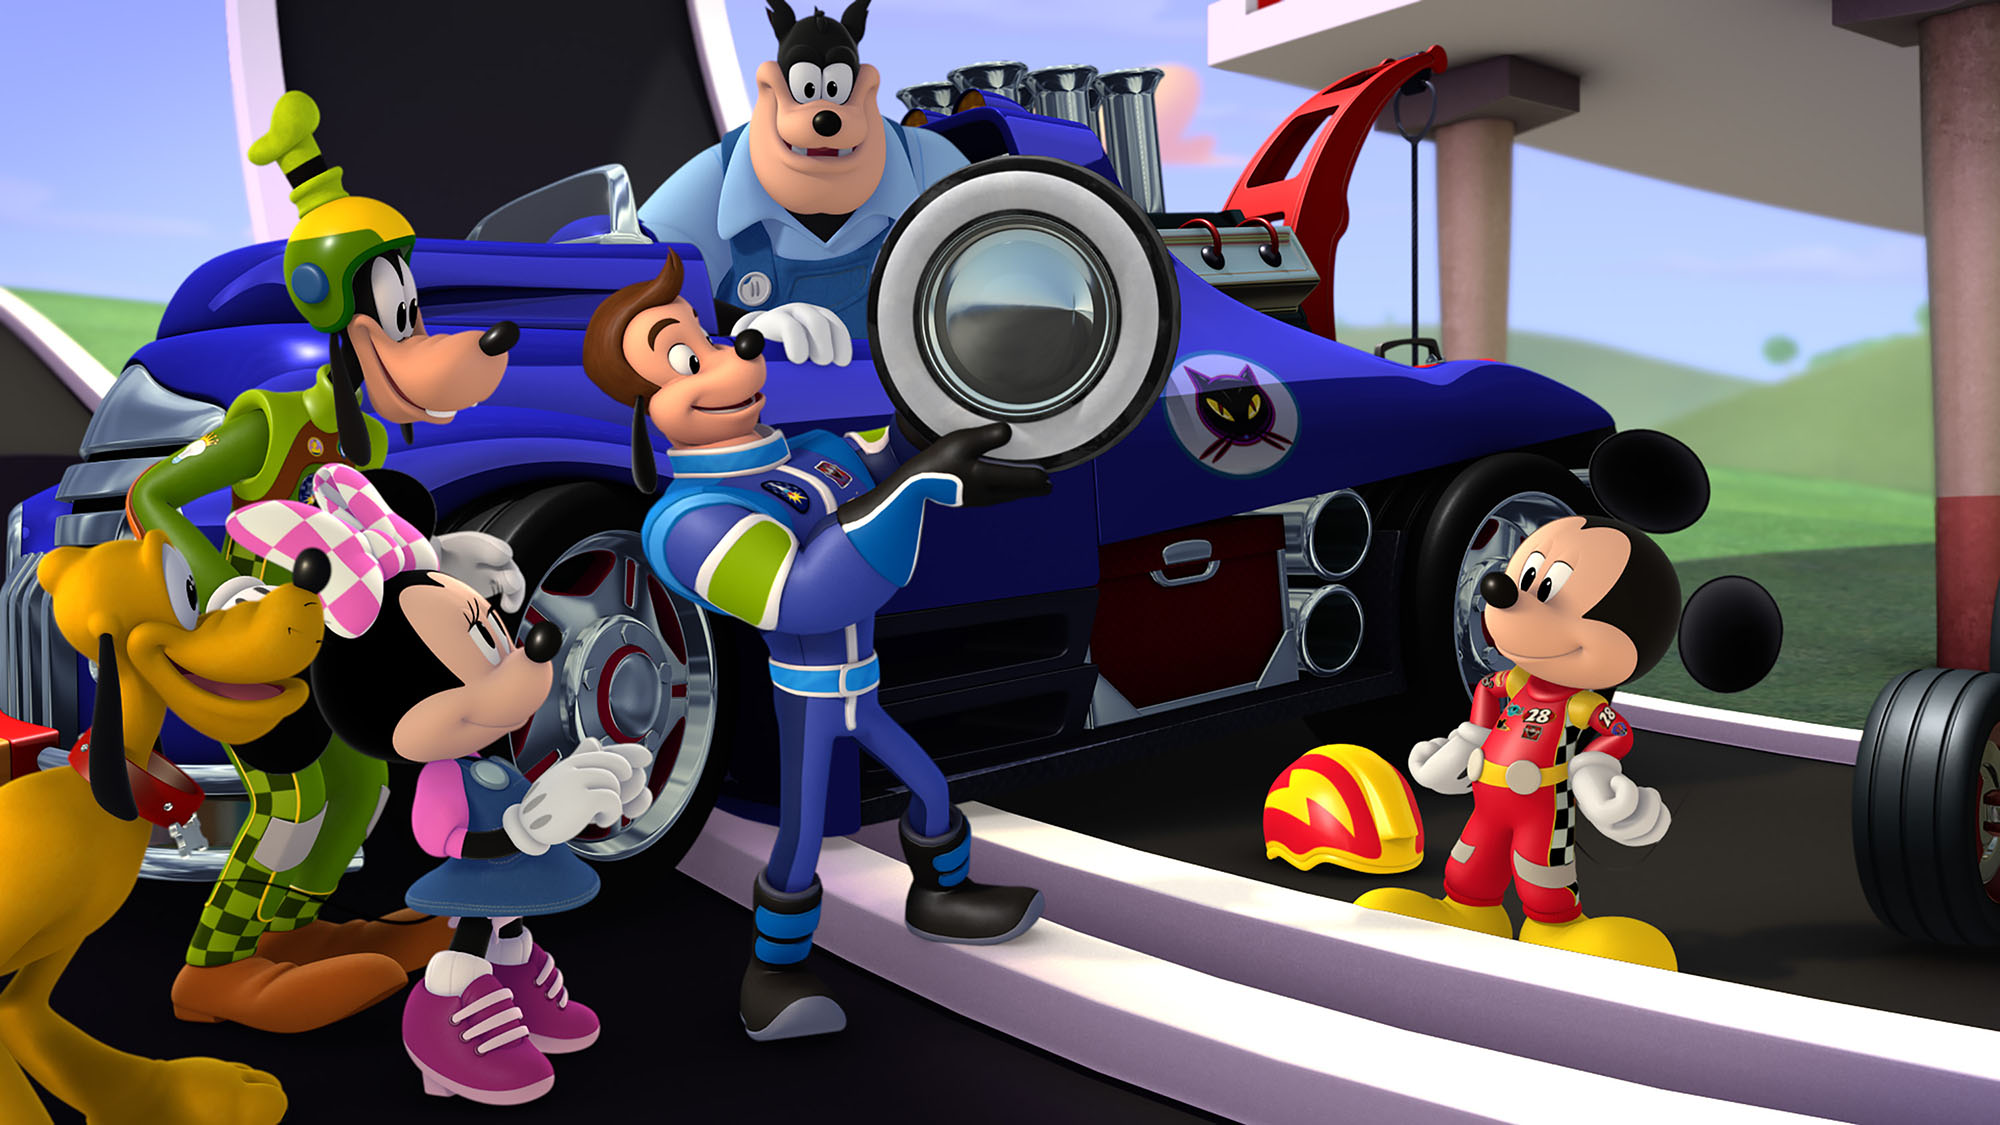 PLUTO, GOOFYM MINNIE MOUSE, JIMINY JOHNSON, PETE THE CAT, MICKEY MOUSE